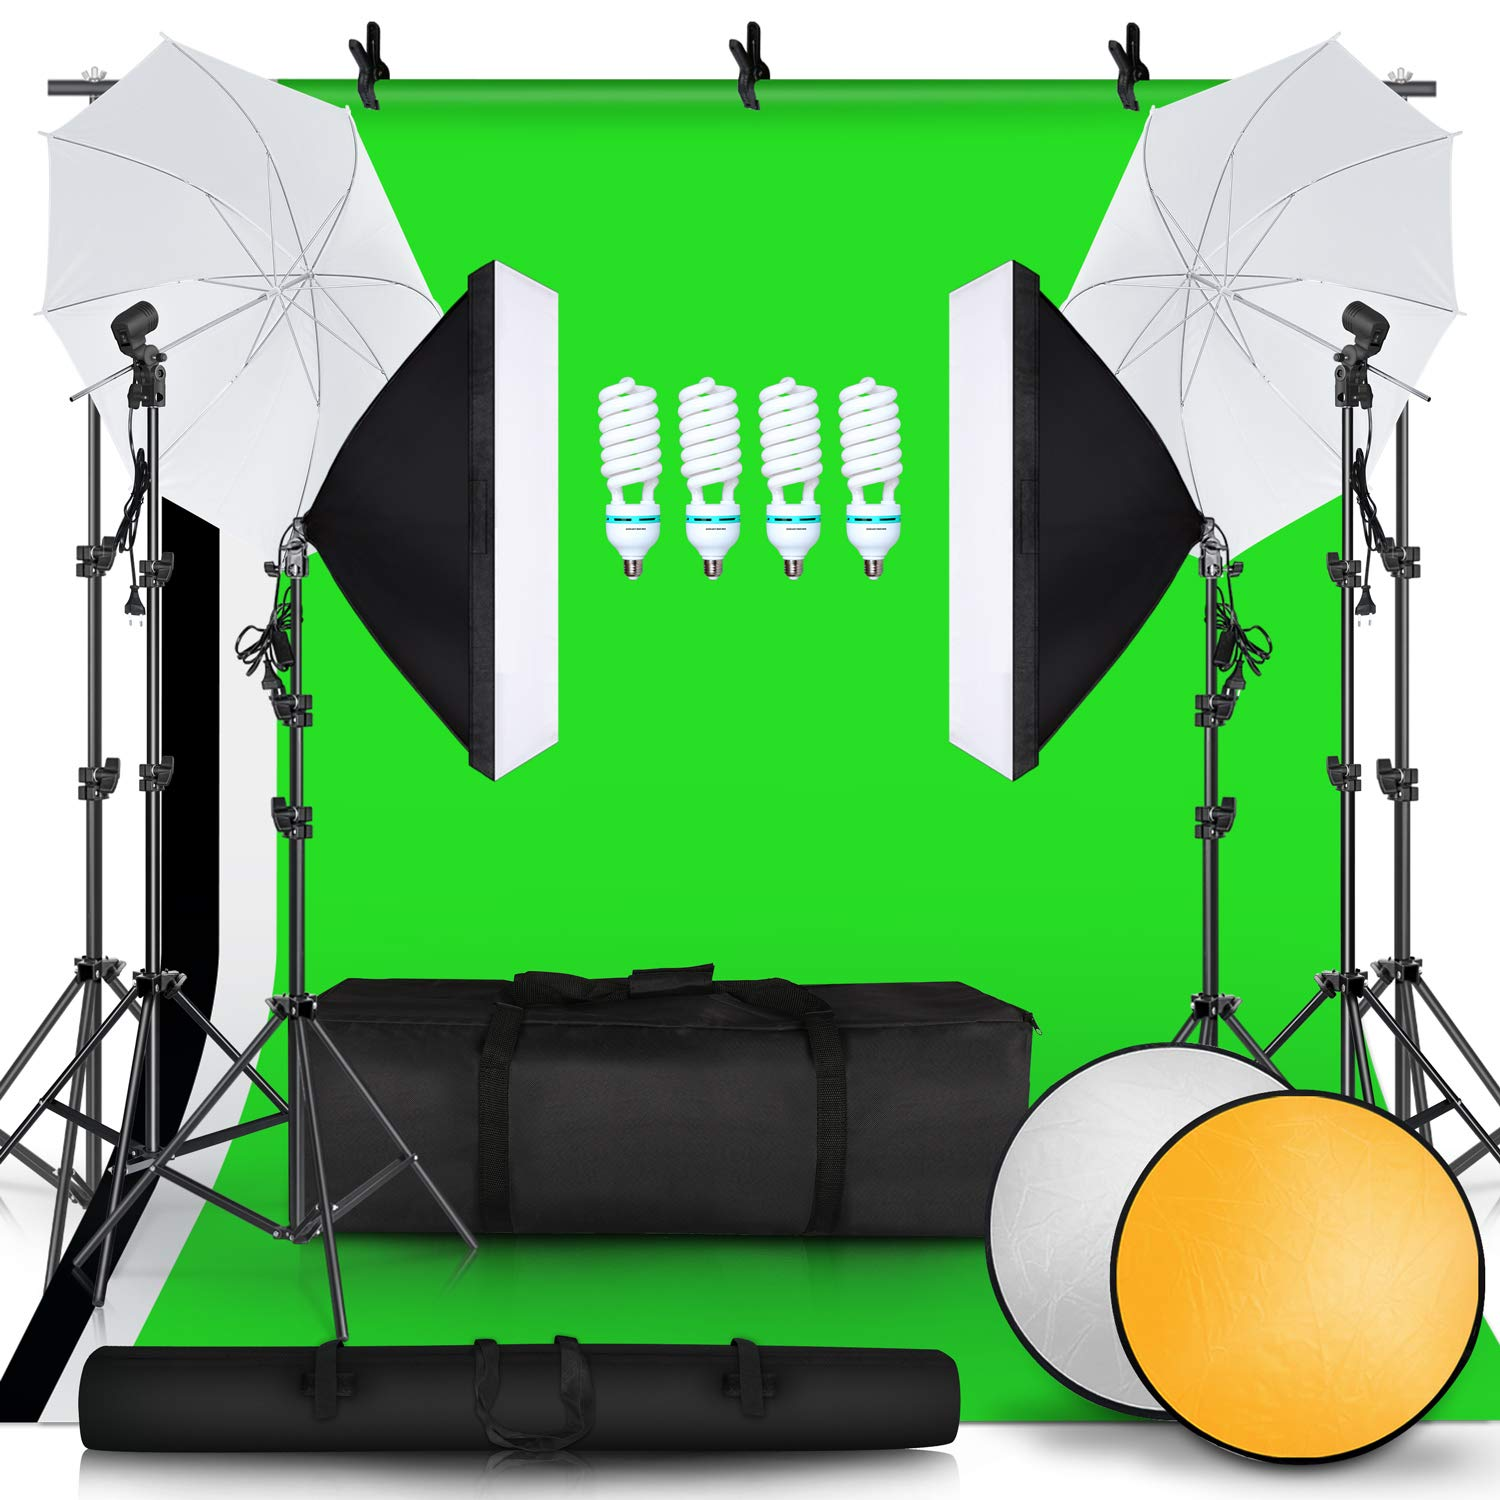 SH 2.6M x 3M/8.5ft x 10ft Background Support System and 4 x 85W 5500K Bulbs, Umbrellas Softbox Continuous Lighting Kit for Photo Studio Product,Portrait and Video Shoot Photography by SH